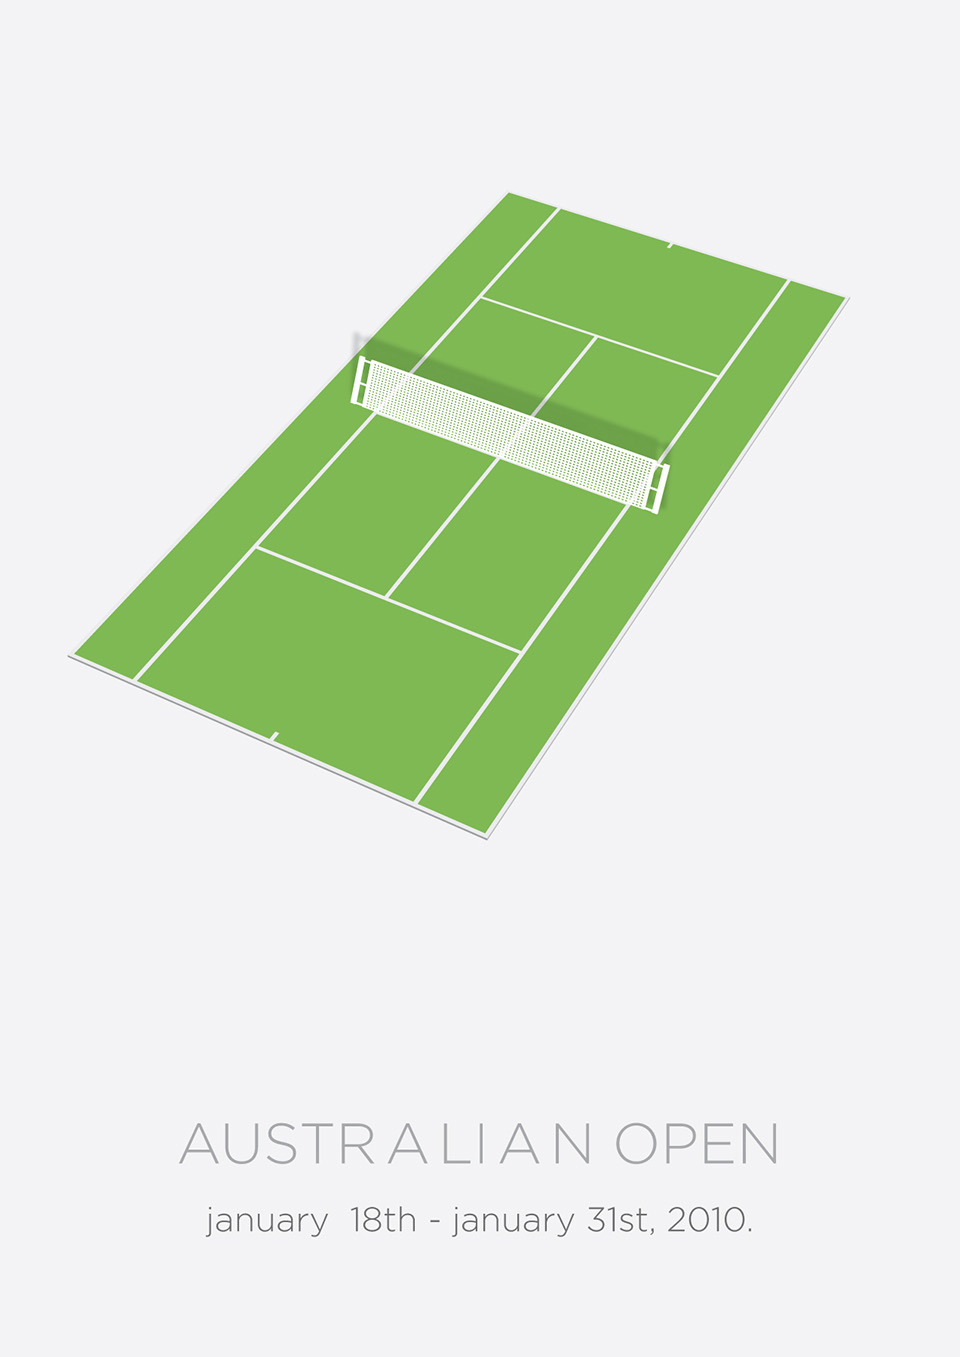 grand slams 2010 - australian open